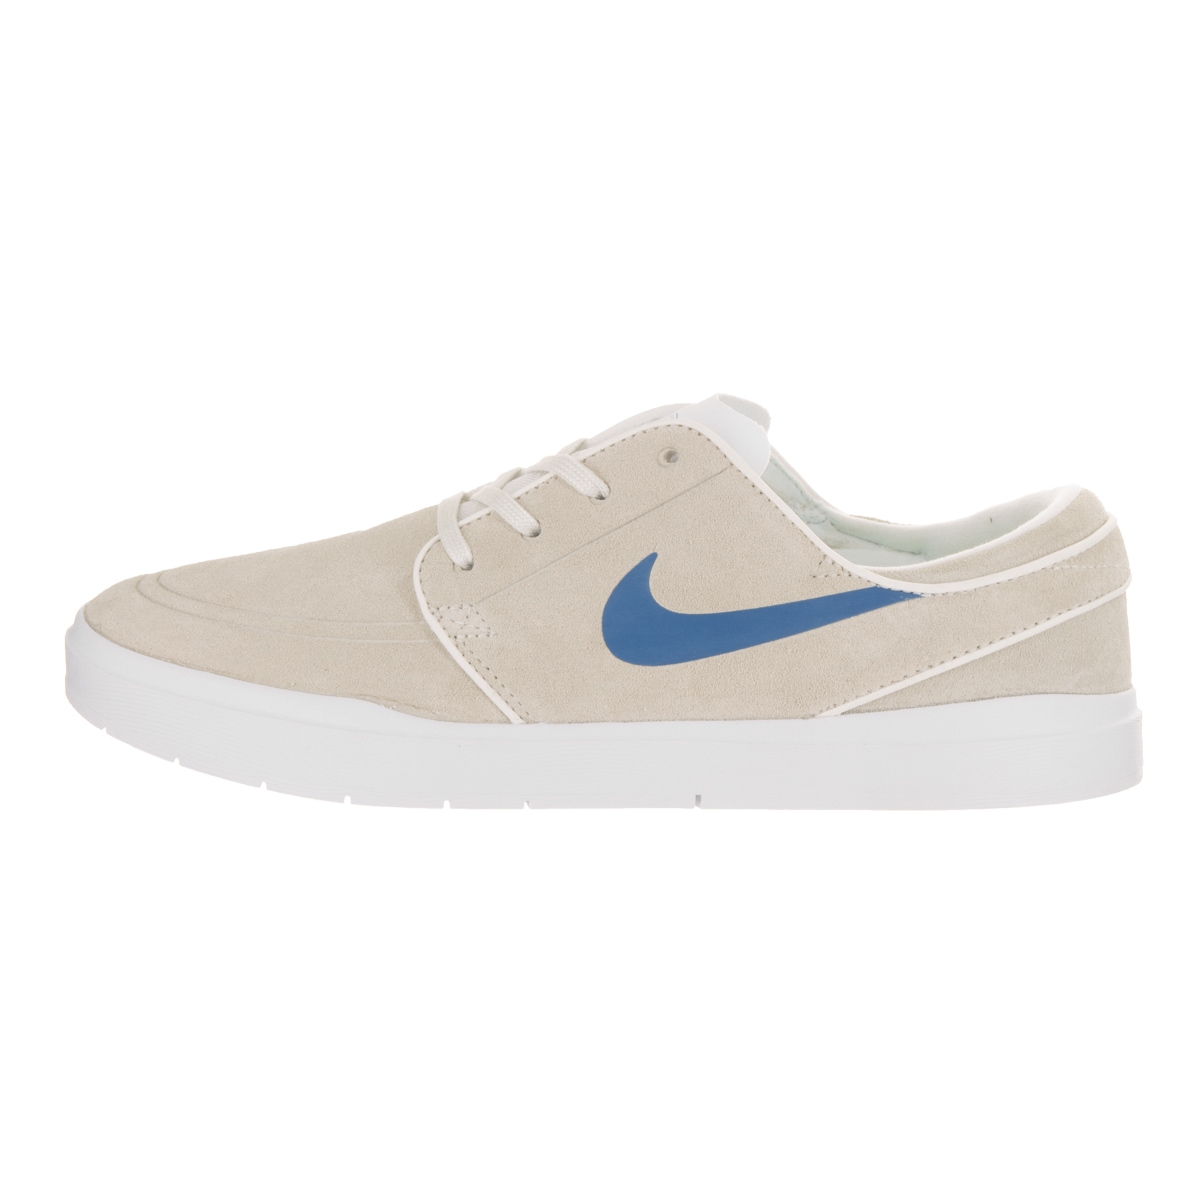 wholesale dealer adcd7 89430 Shop Nike Men s Stefan Janoski Hyperfeel Skate Shoes - Free Shipping Today  - Overstock.com - 15054586